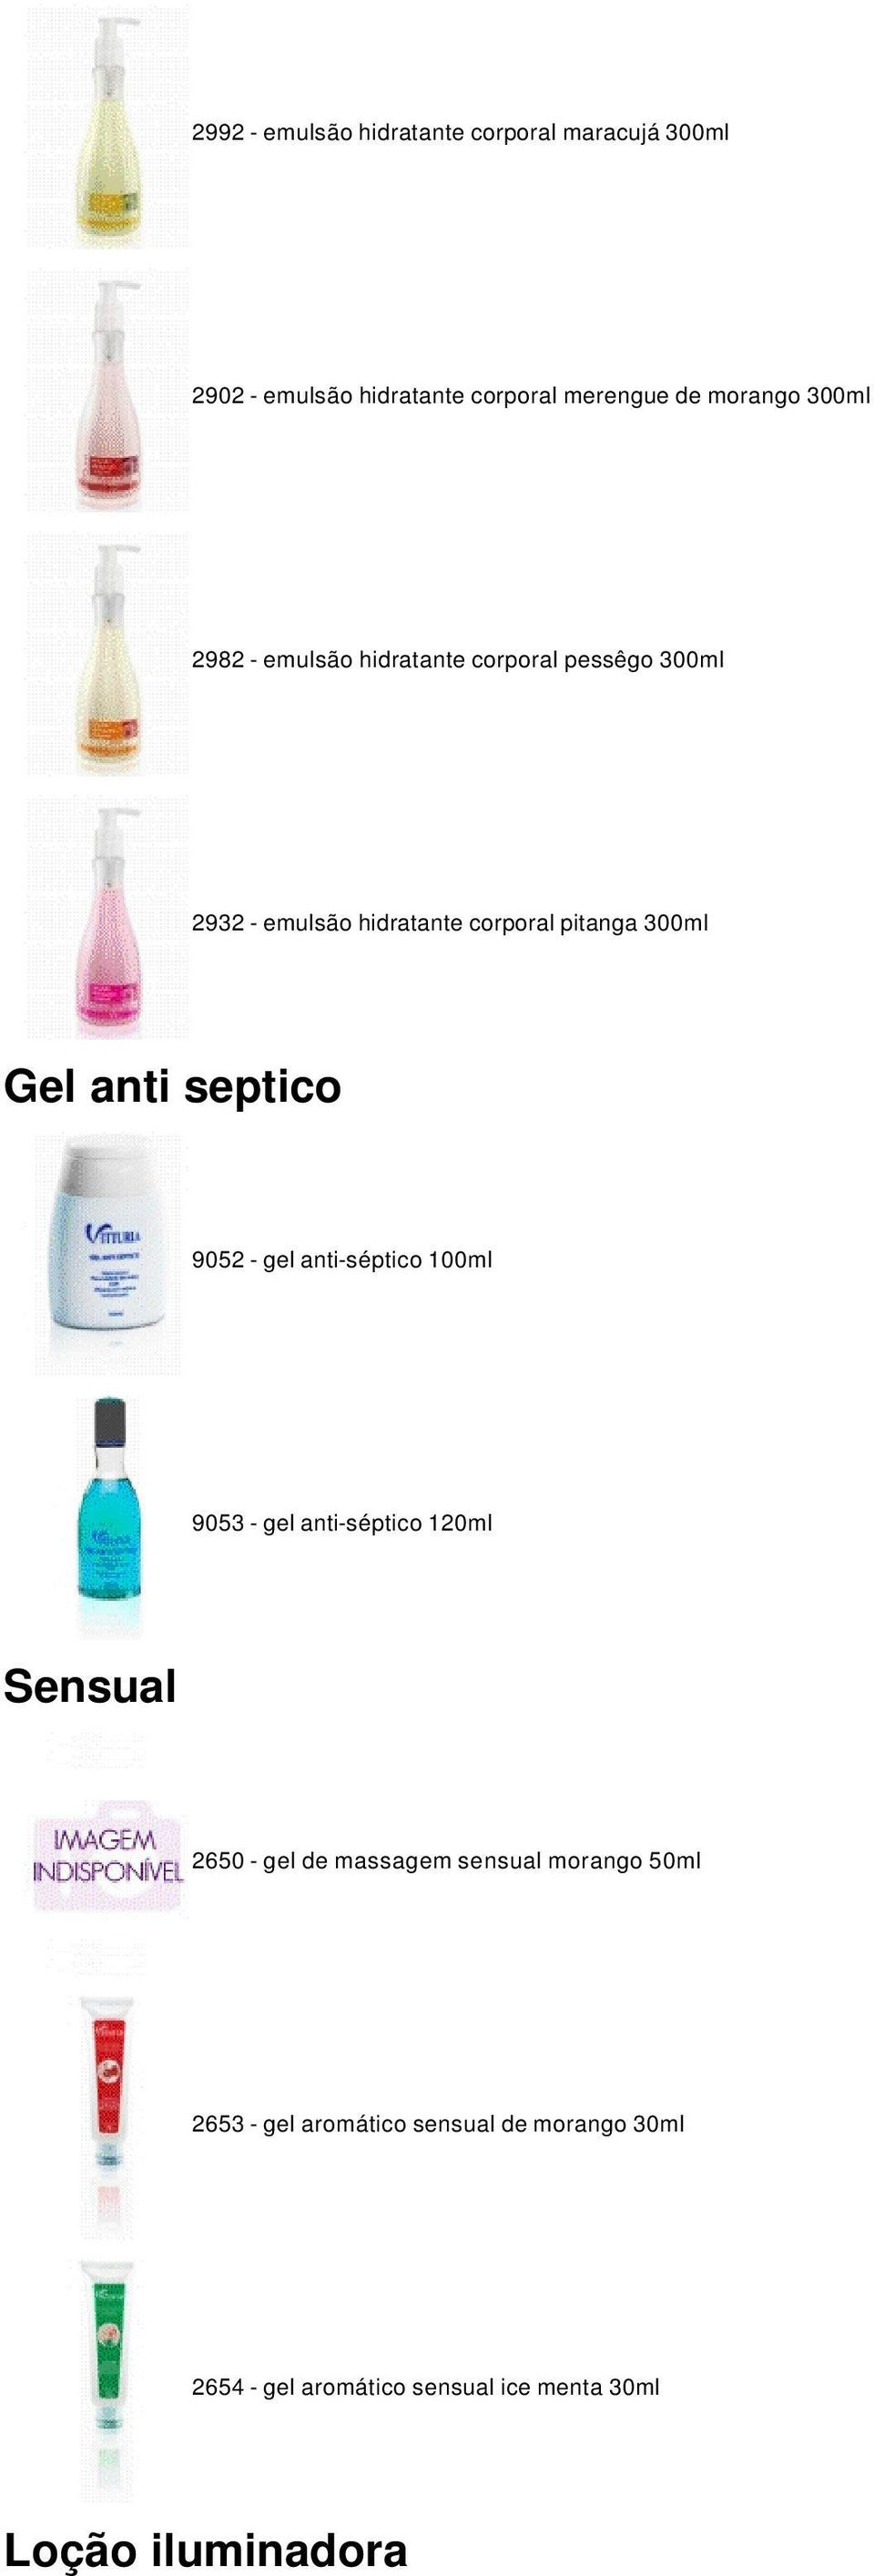 septico 9052 - gel anti-séptico 100ml 9053 - gel anti-séptico 120ml Sensual 2650 - gel de massagem sensual